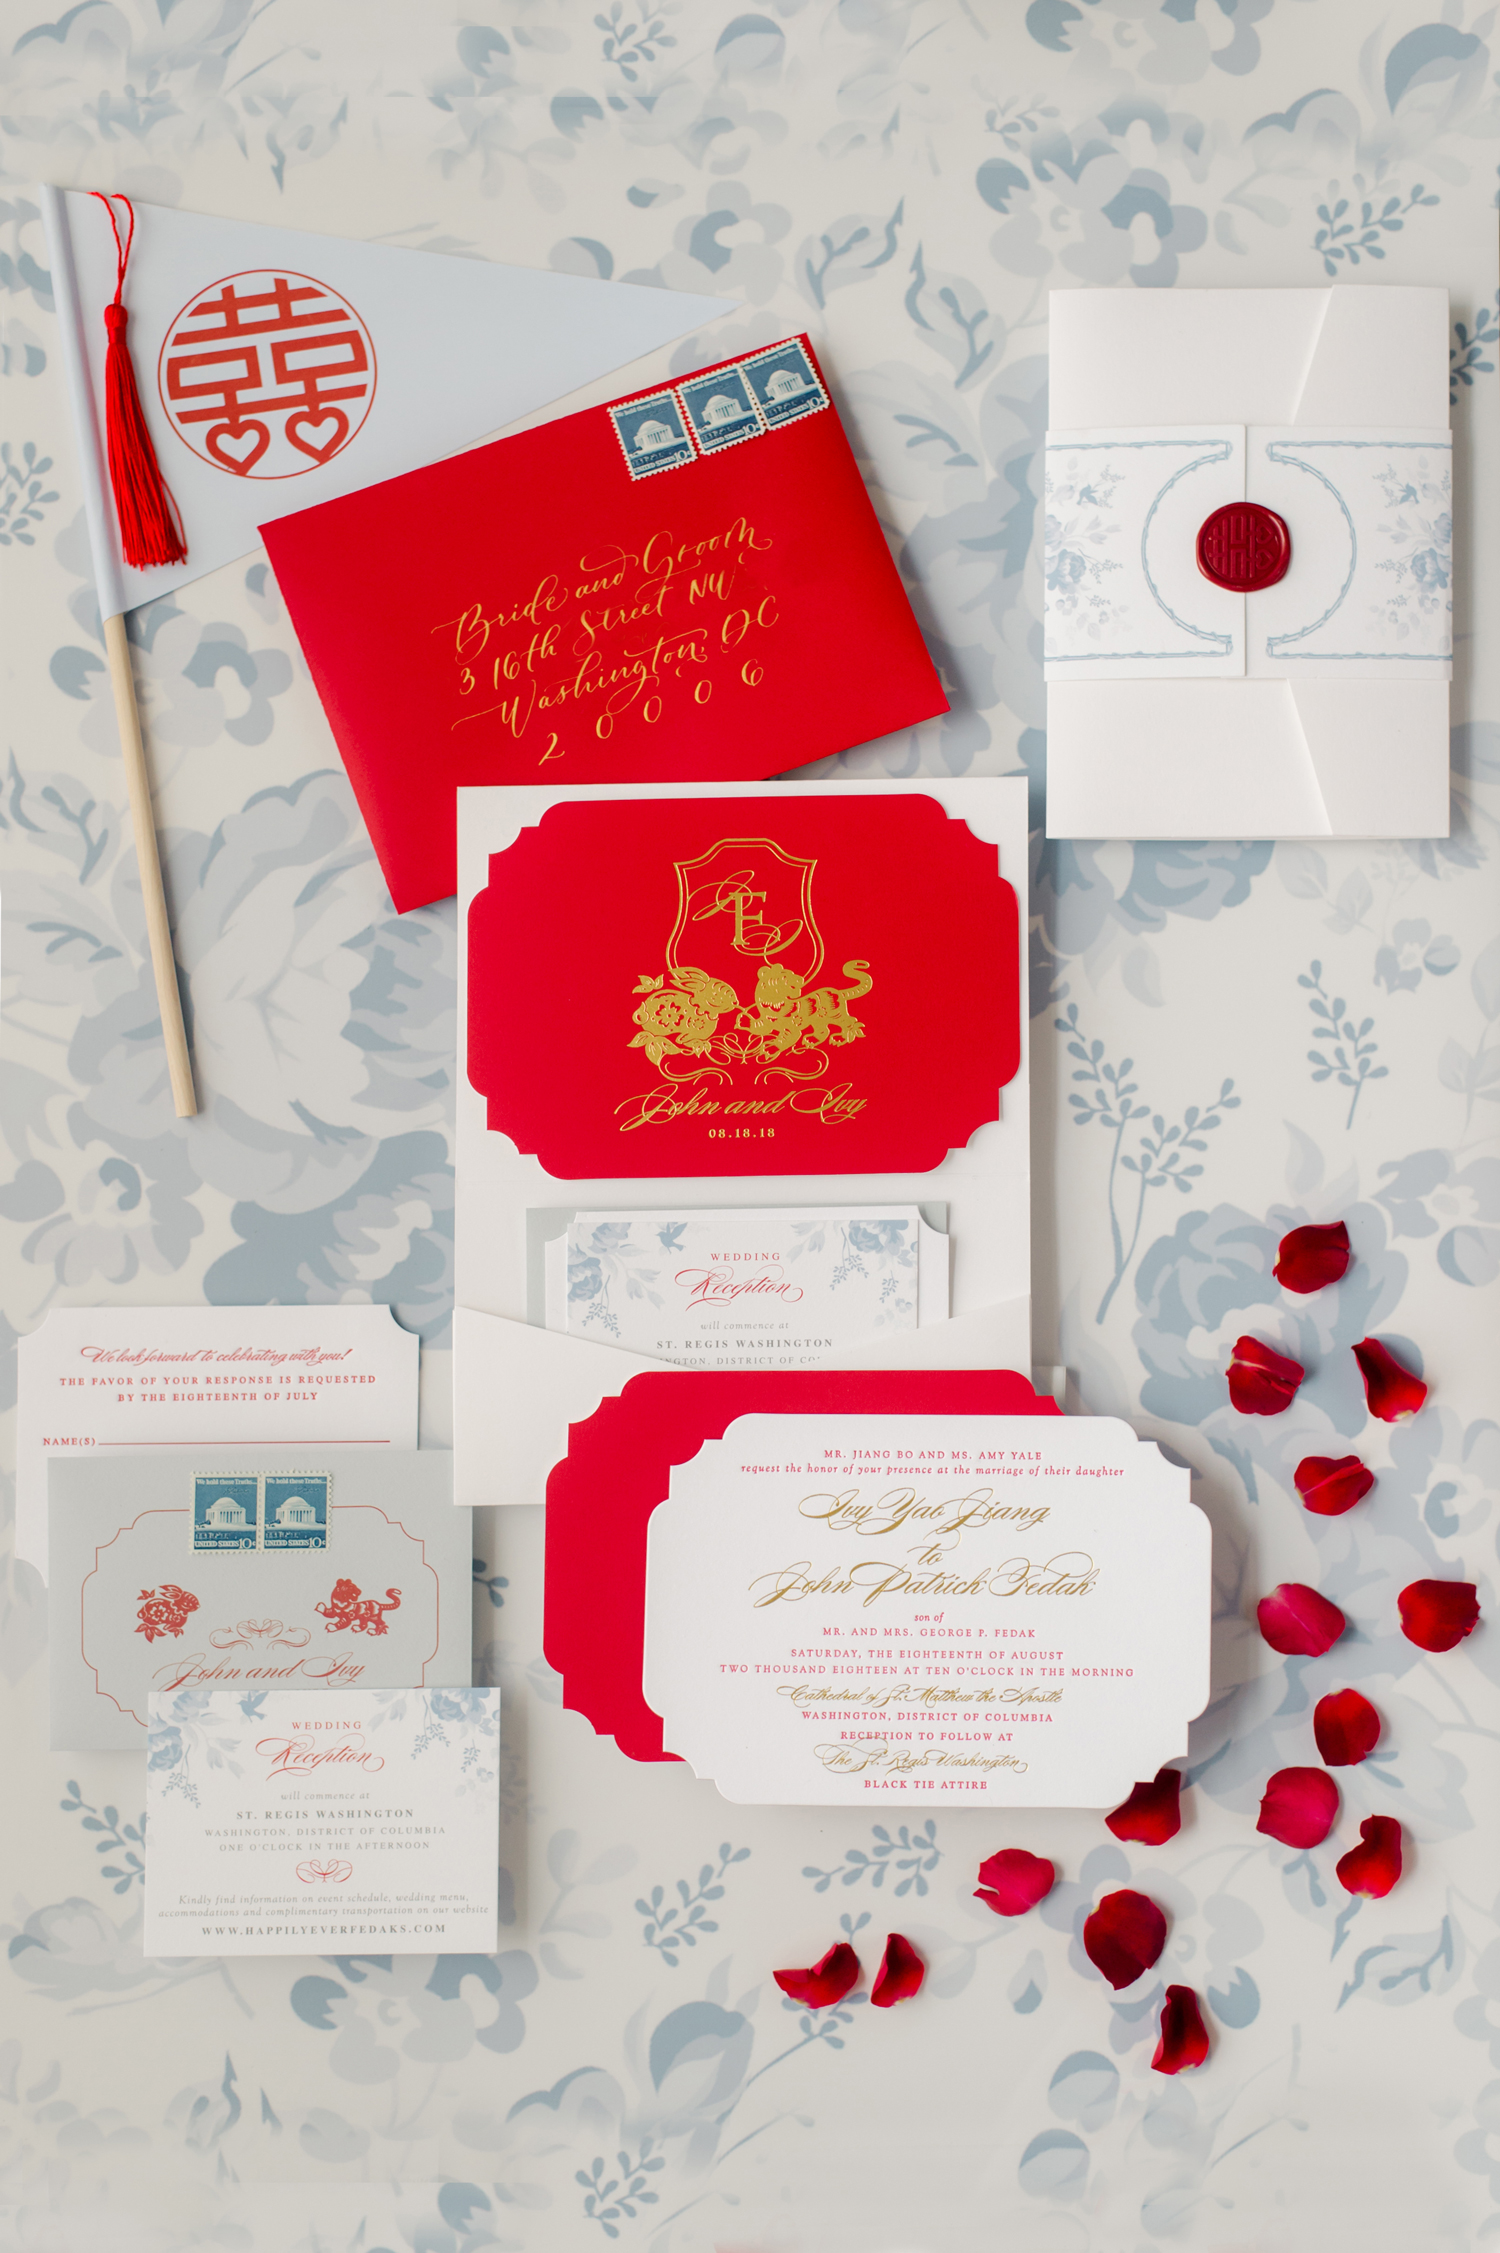 red and white stationary with gold writing